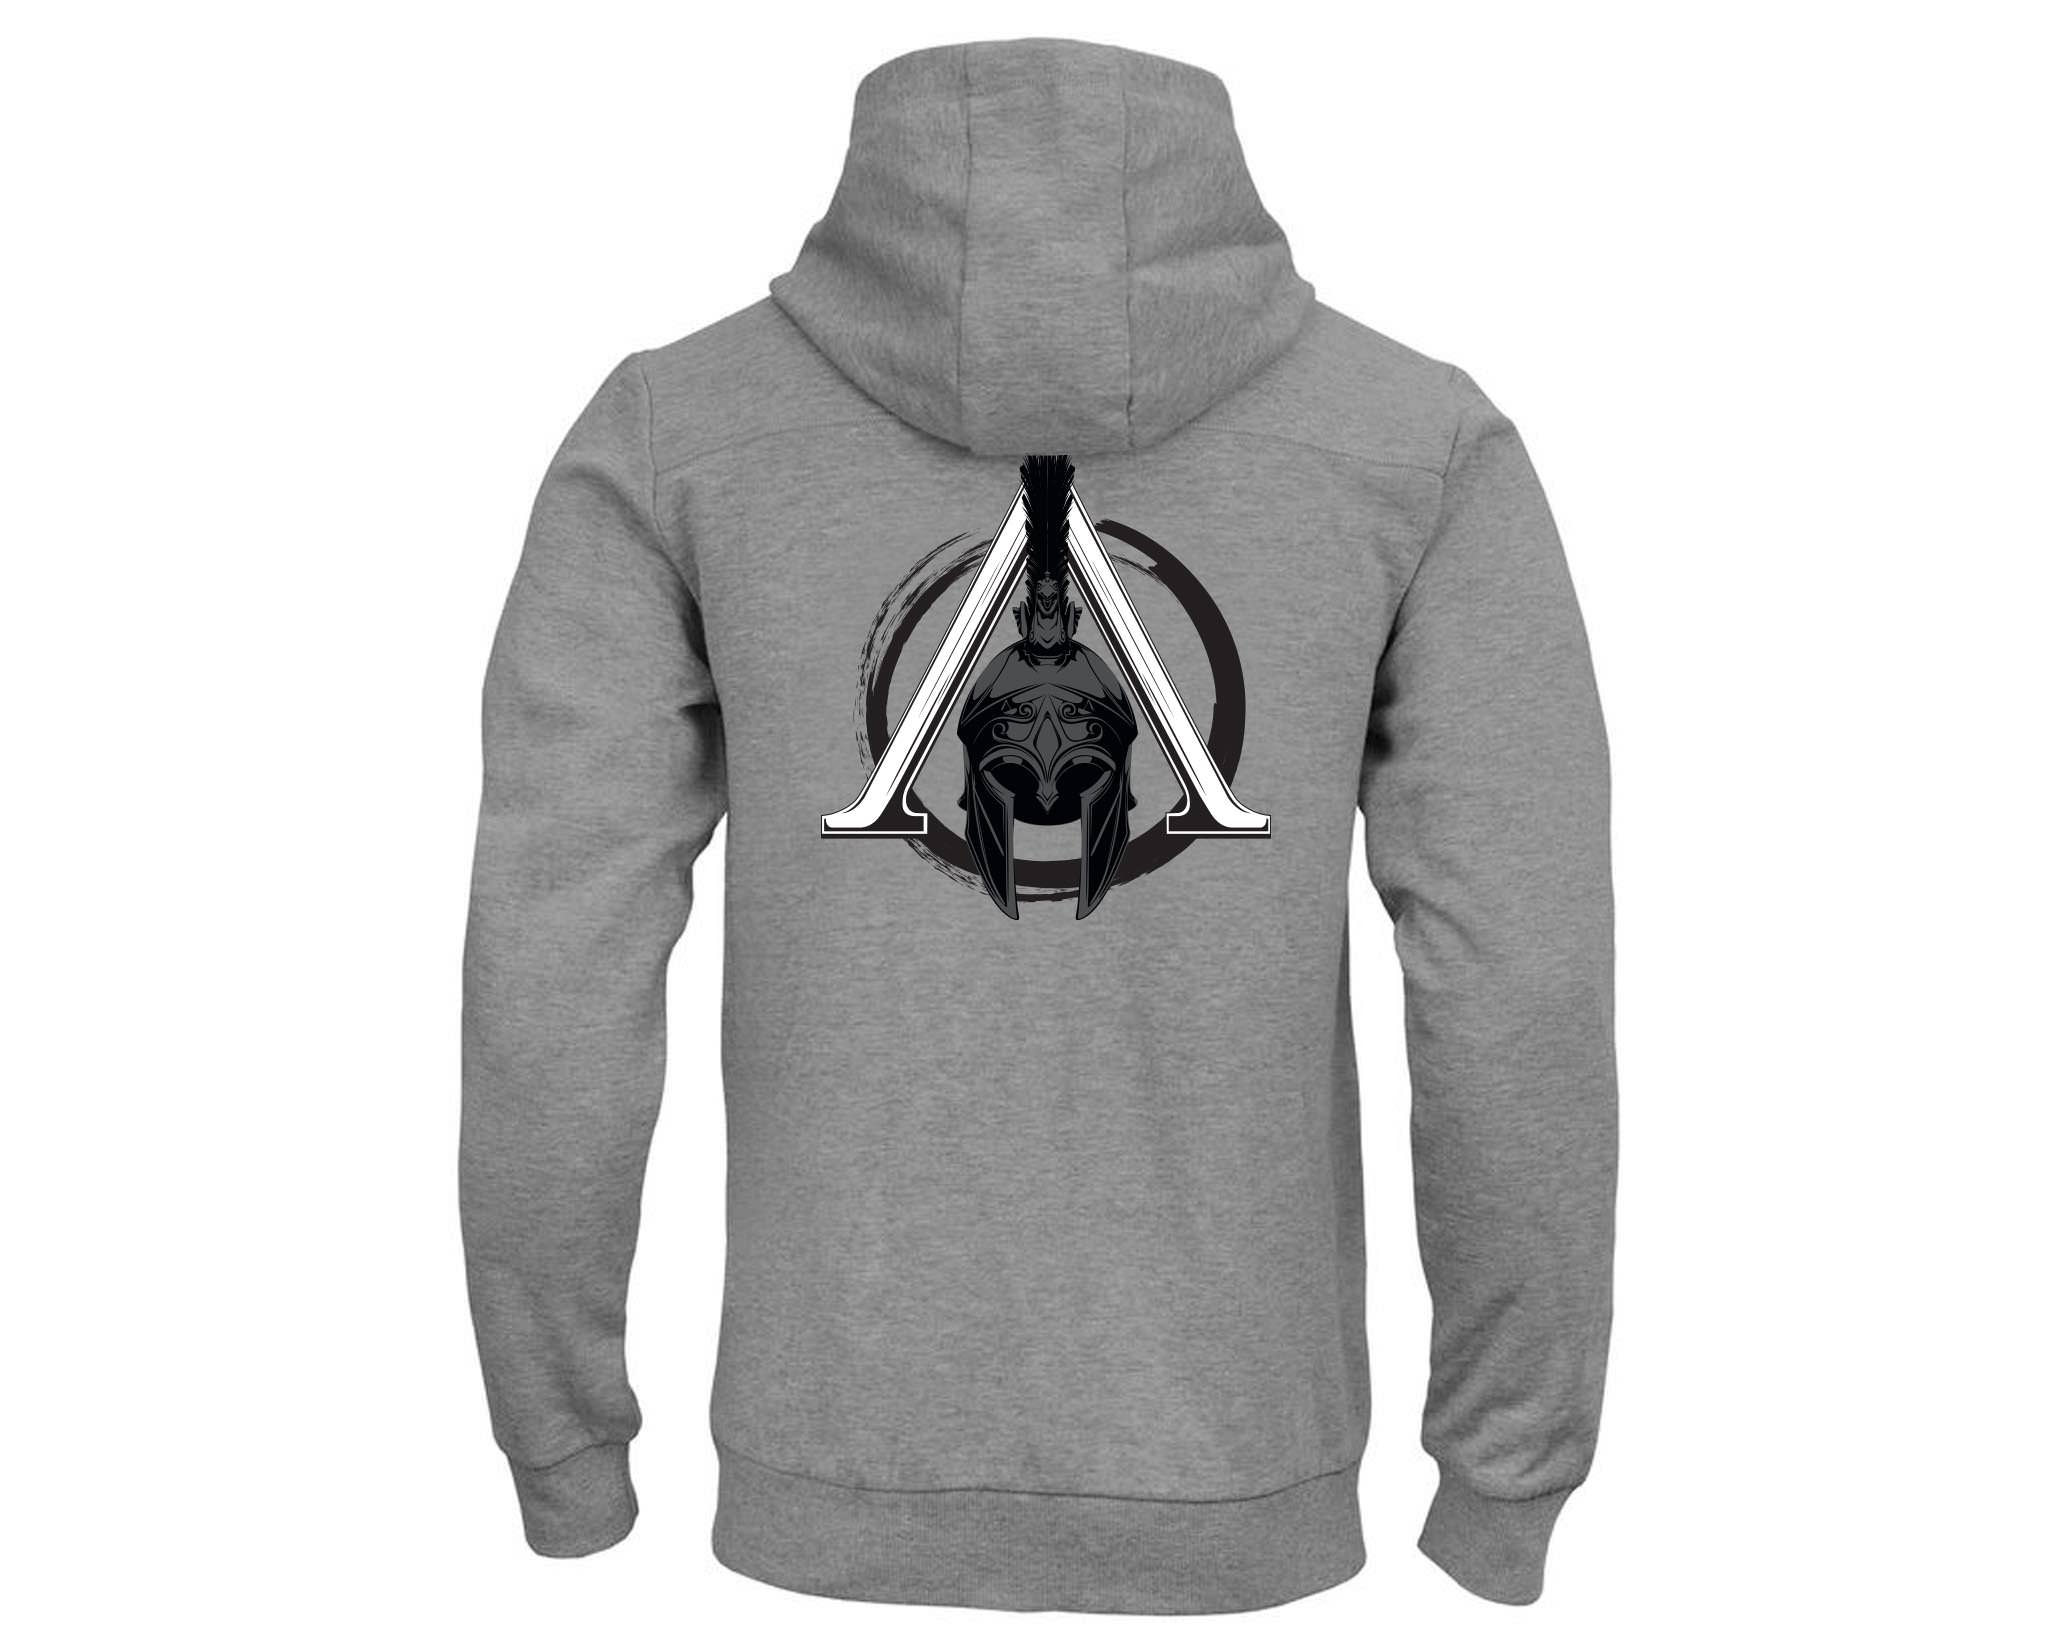 Ubisoft Spartan Odyssey Creed Hoodie Store Assassin's Qgyp5 nON0PkX8w